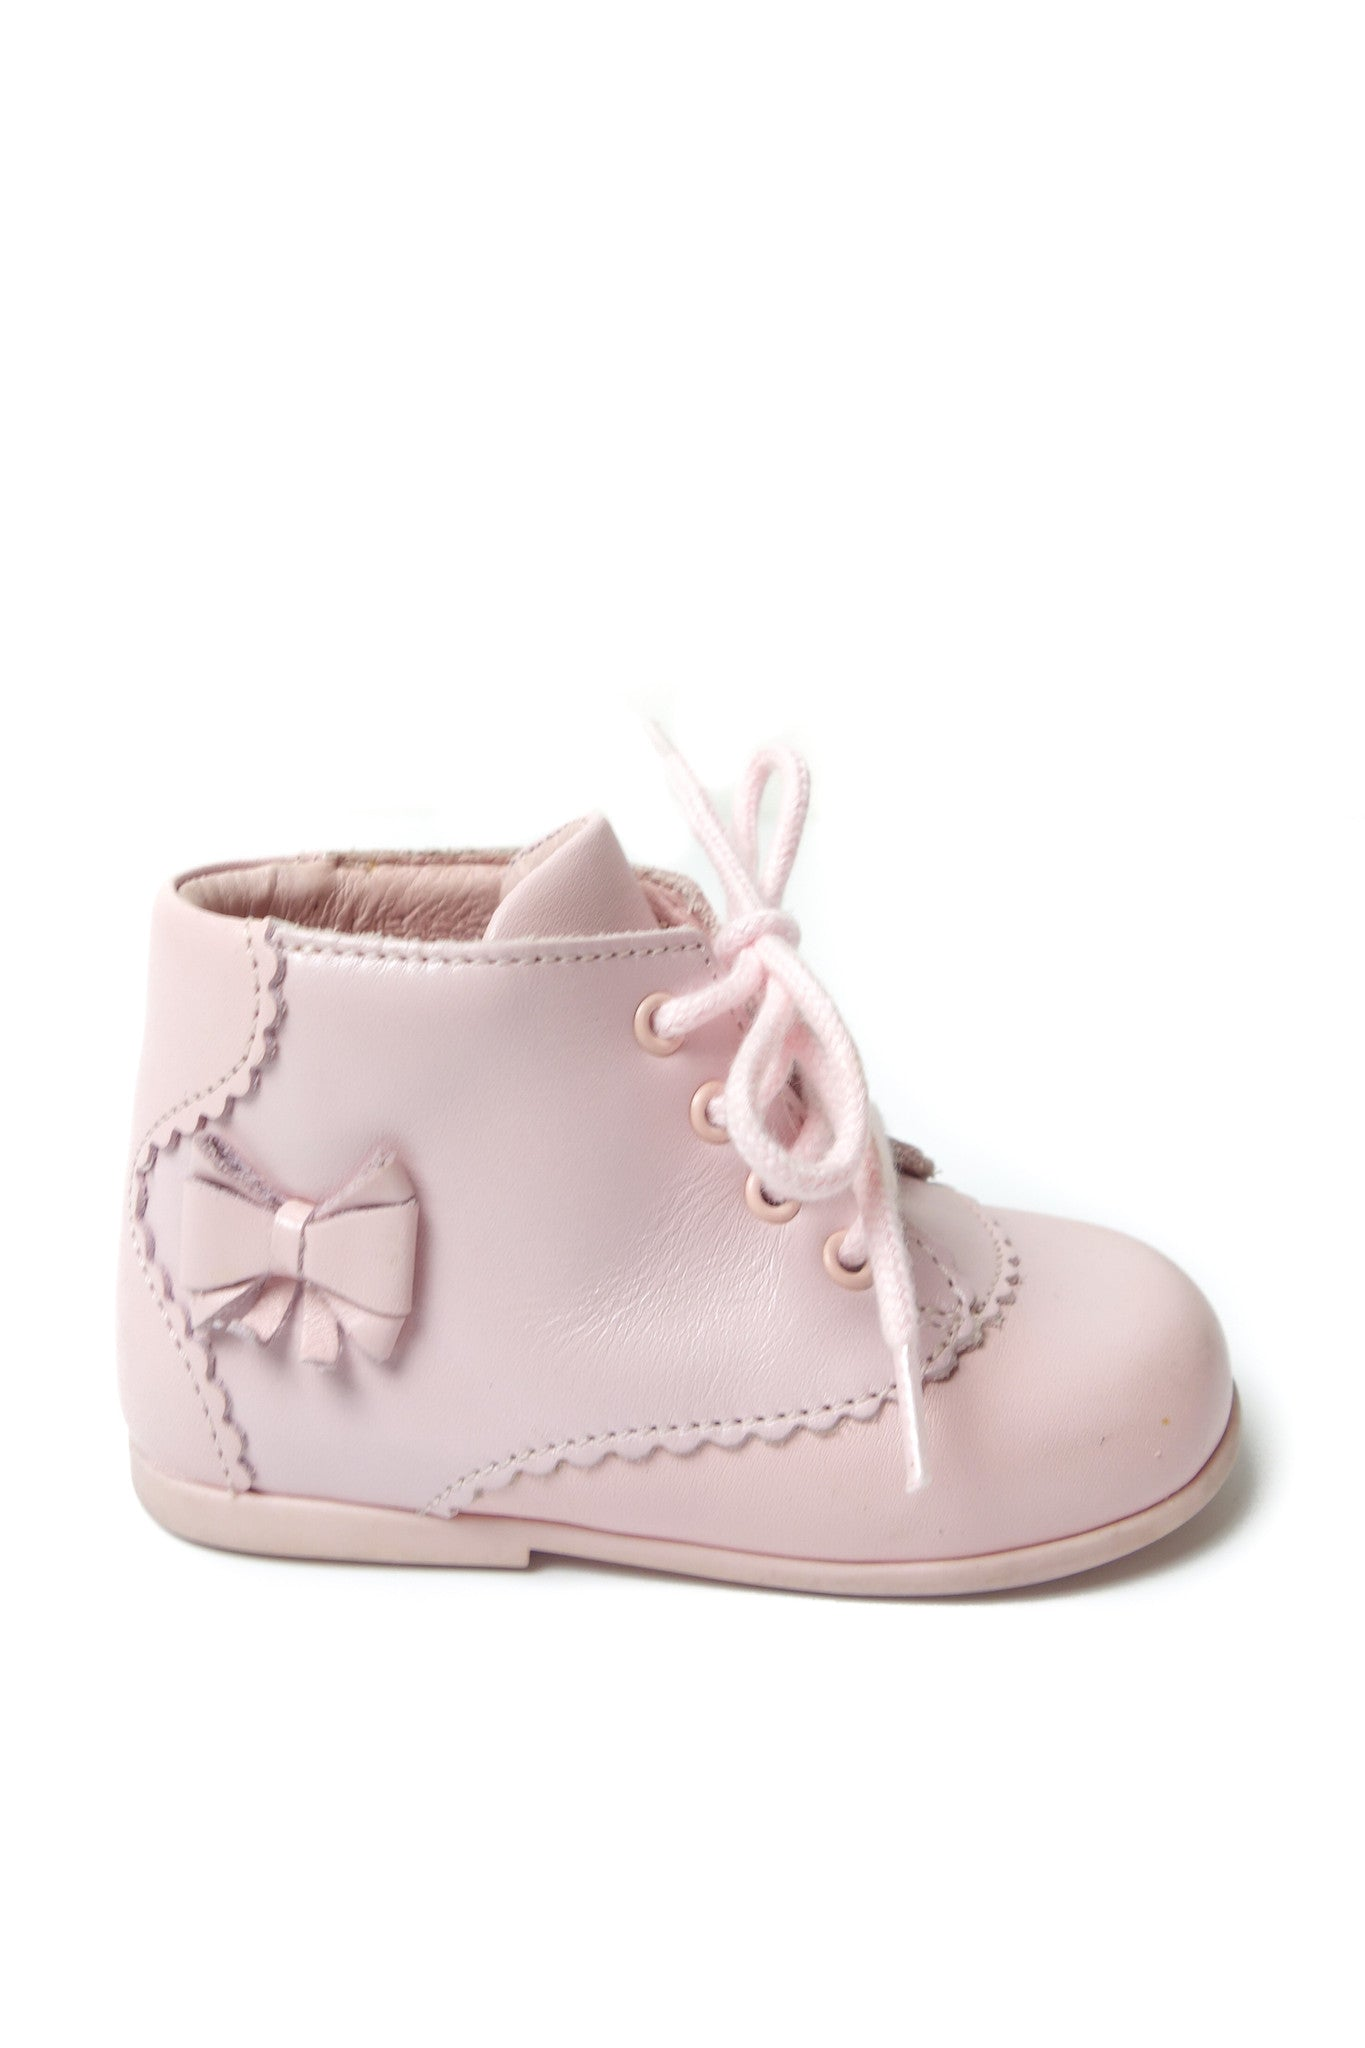 10001635 Jacadi Baby~Shoes 12-18M (EU 21) at Retykle